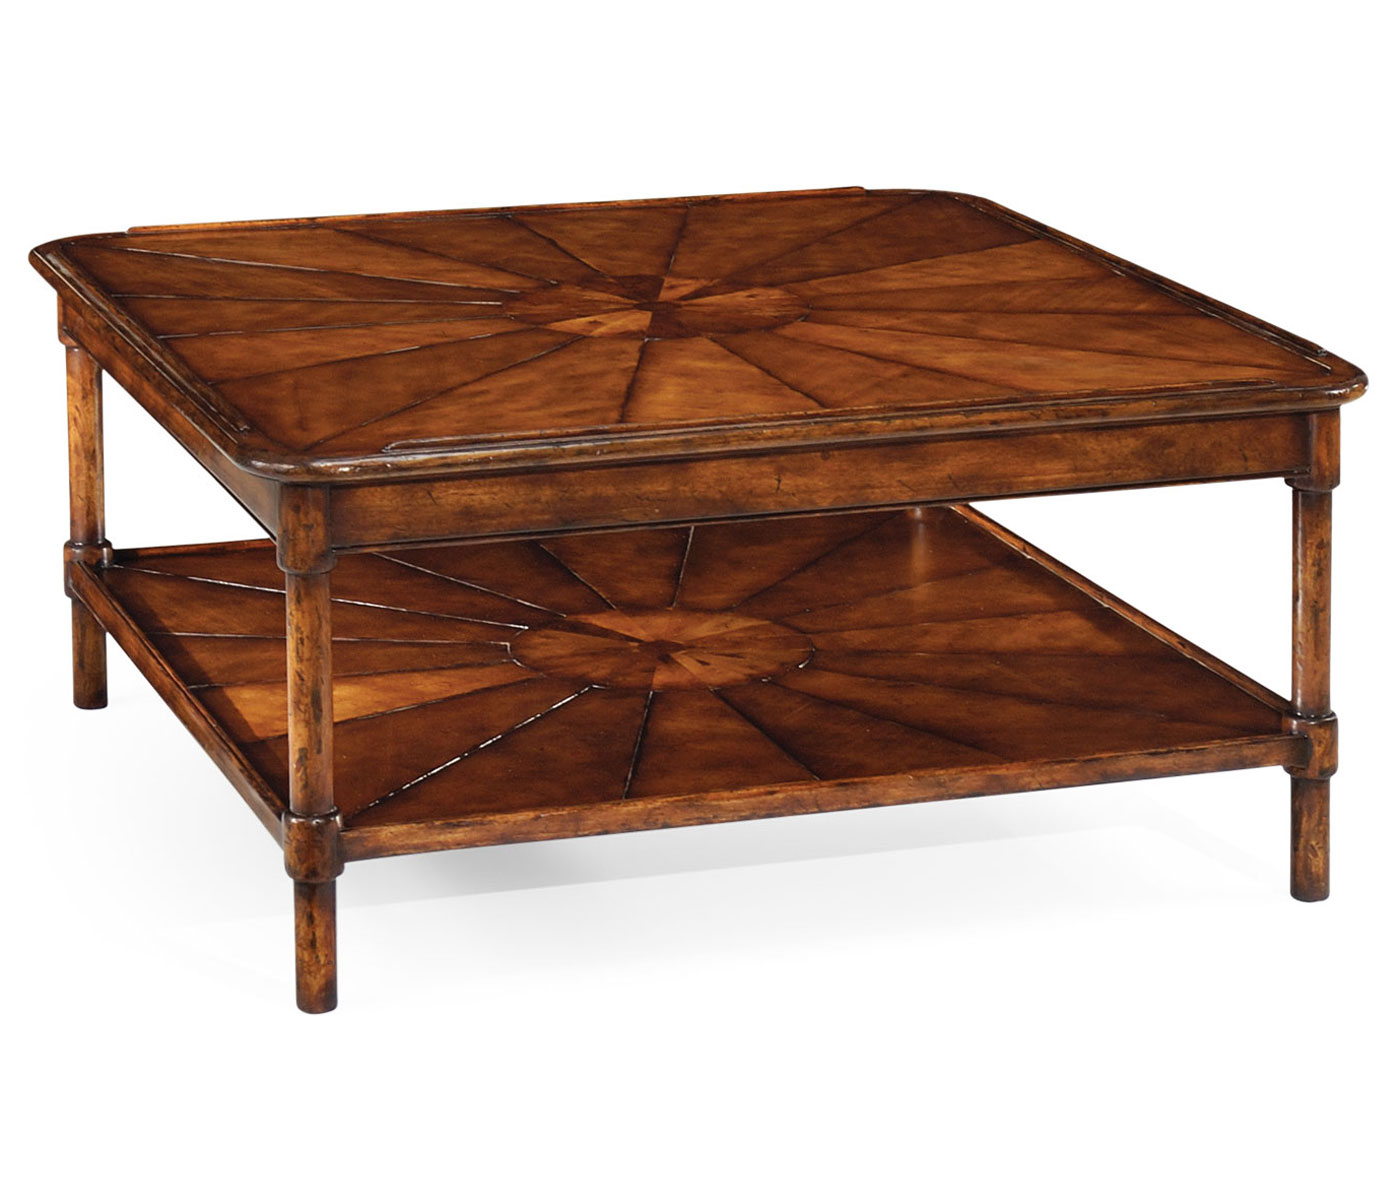 Square rustic walnut coffee table Coffee tables rustic